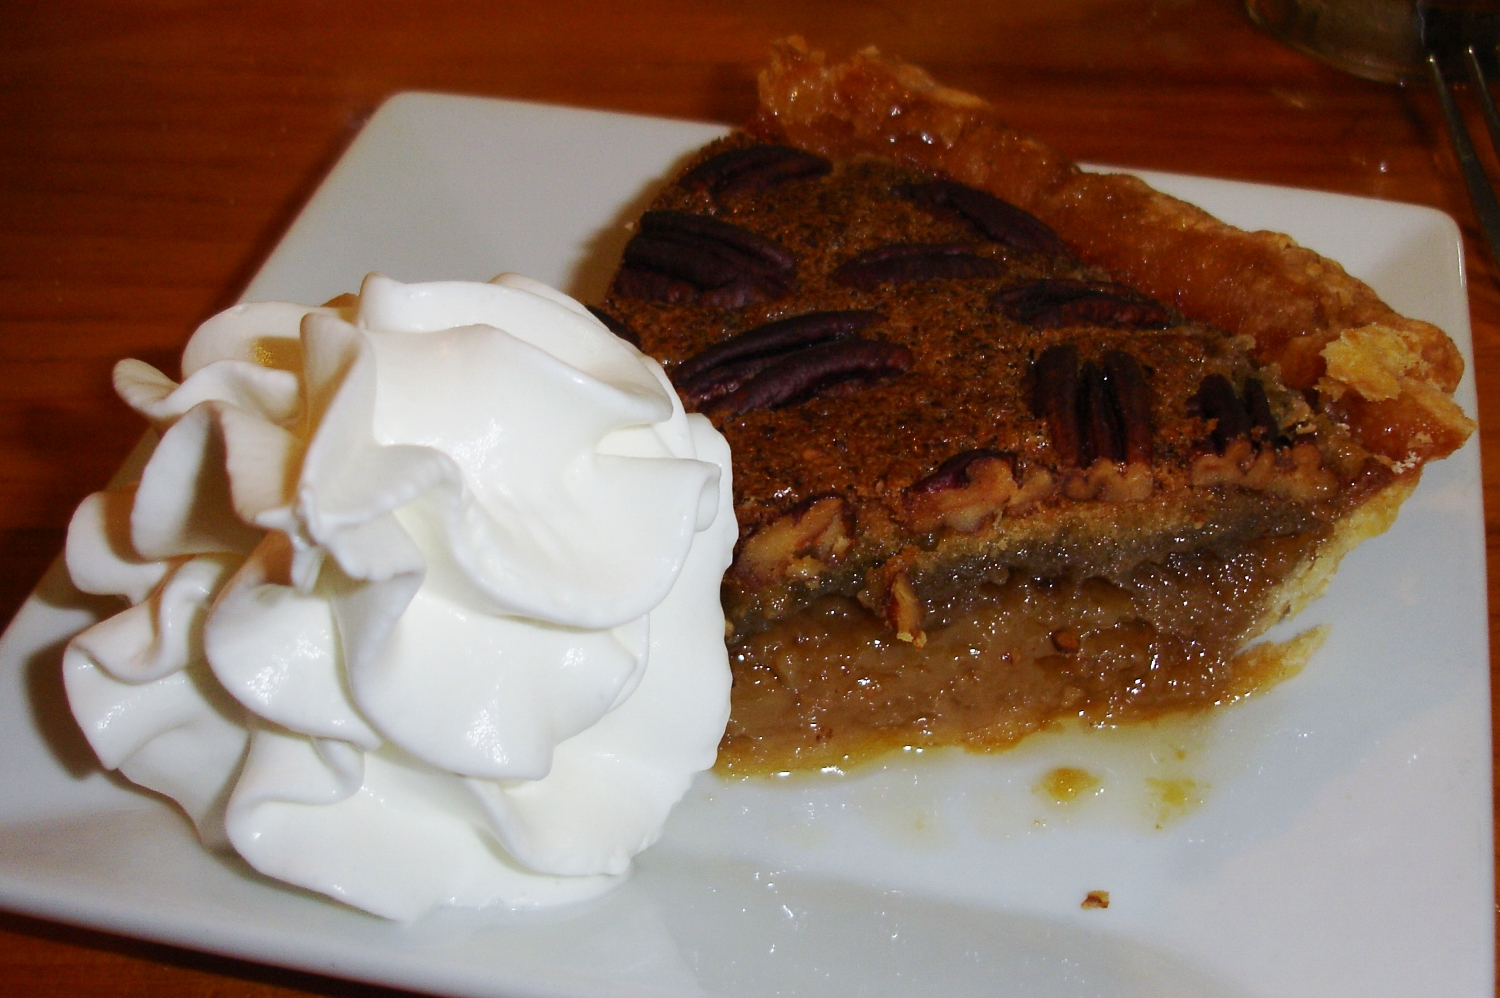 Maple pecan pie, like all the pies at Tozier's, are baked by Sharon Campbell.